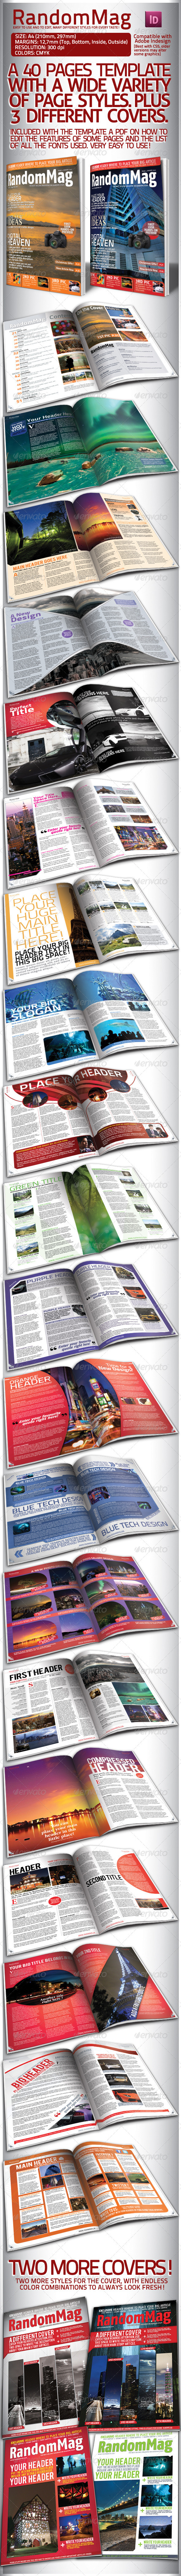 Modern Magazine - 40 Pages, 3 Covers - Magazines Print Templates